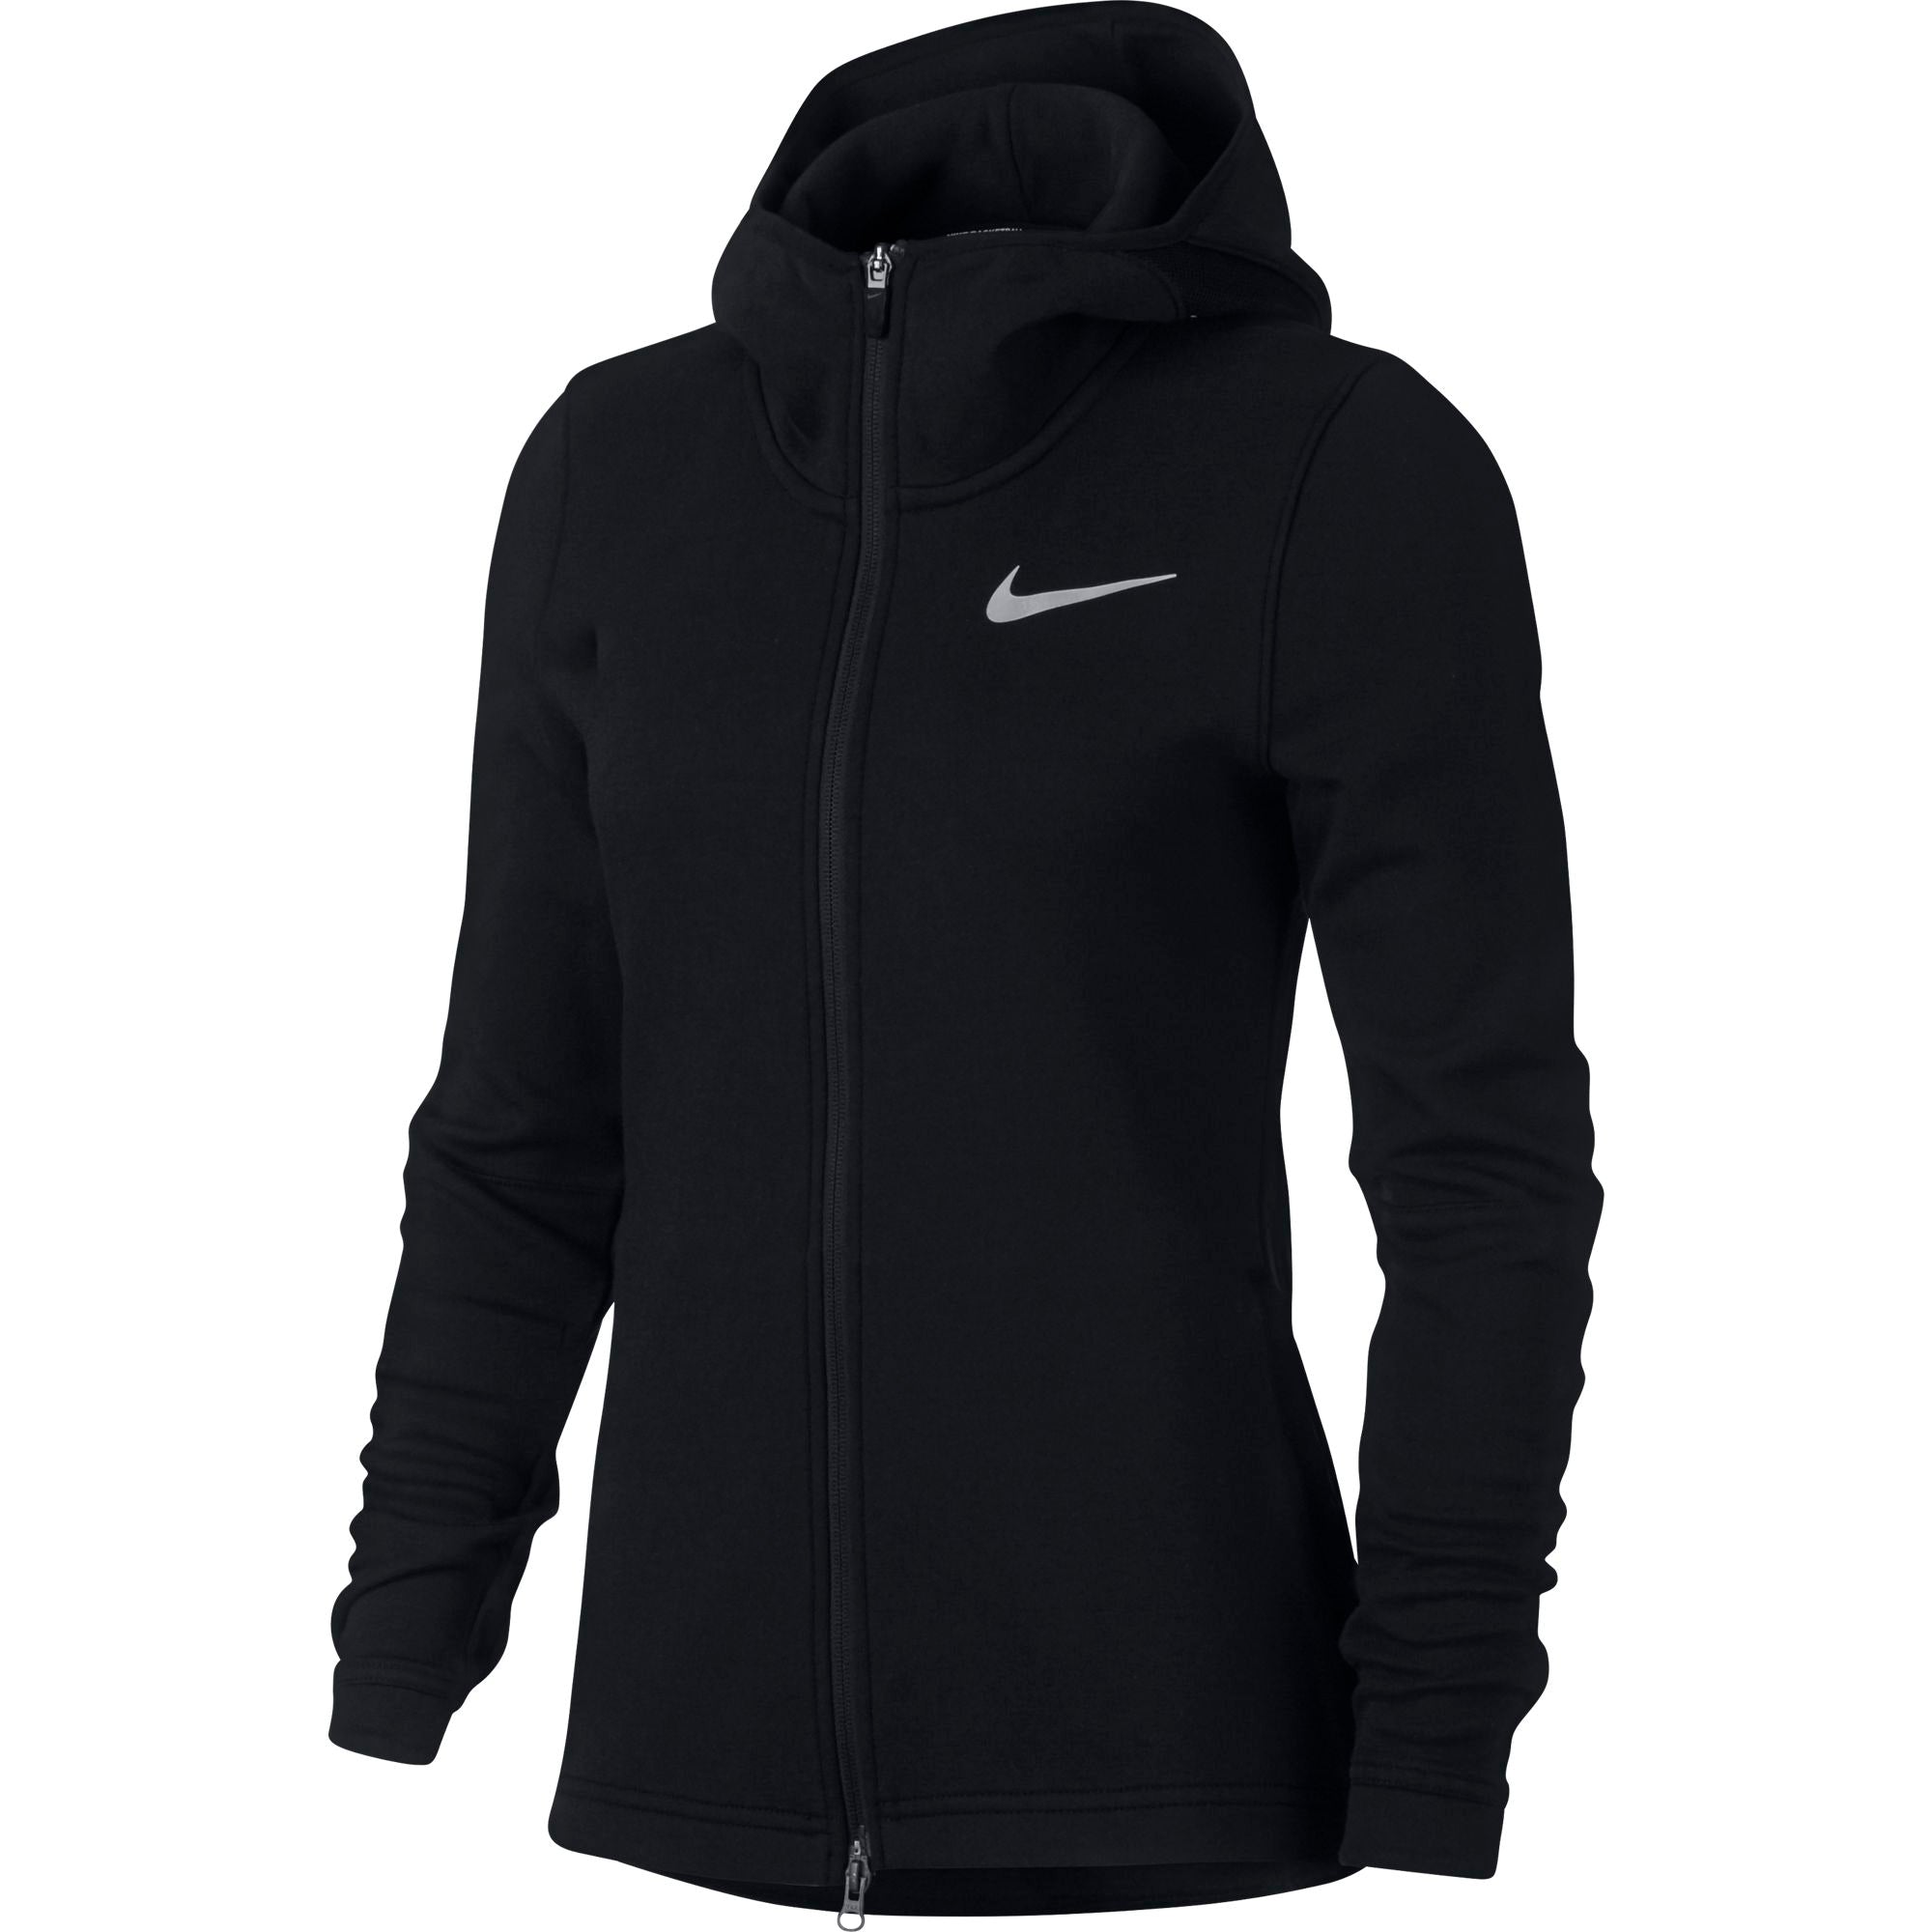 Nike Womens Basketball Dry Showtime Hoodie - NK-855395-010